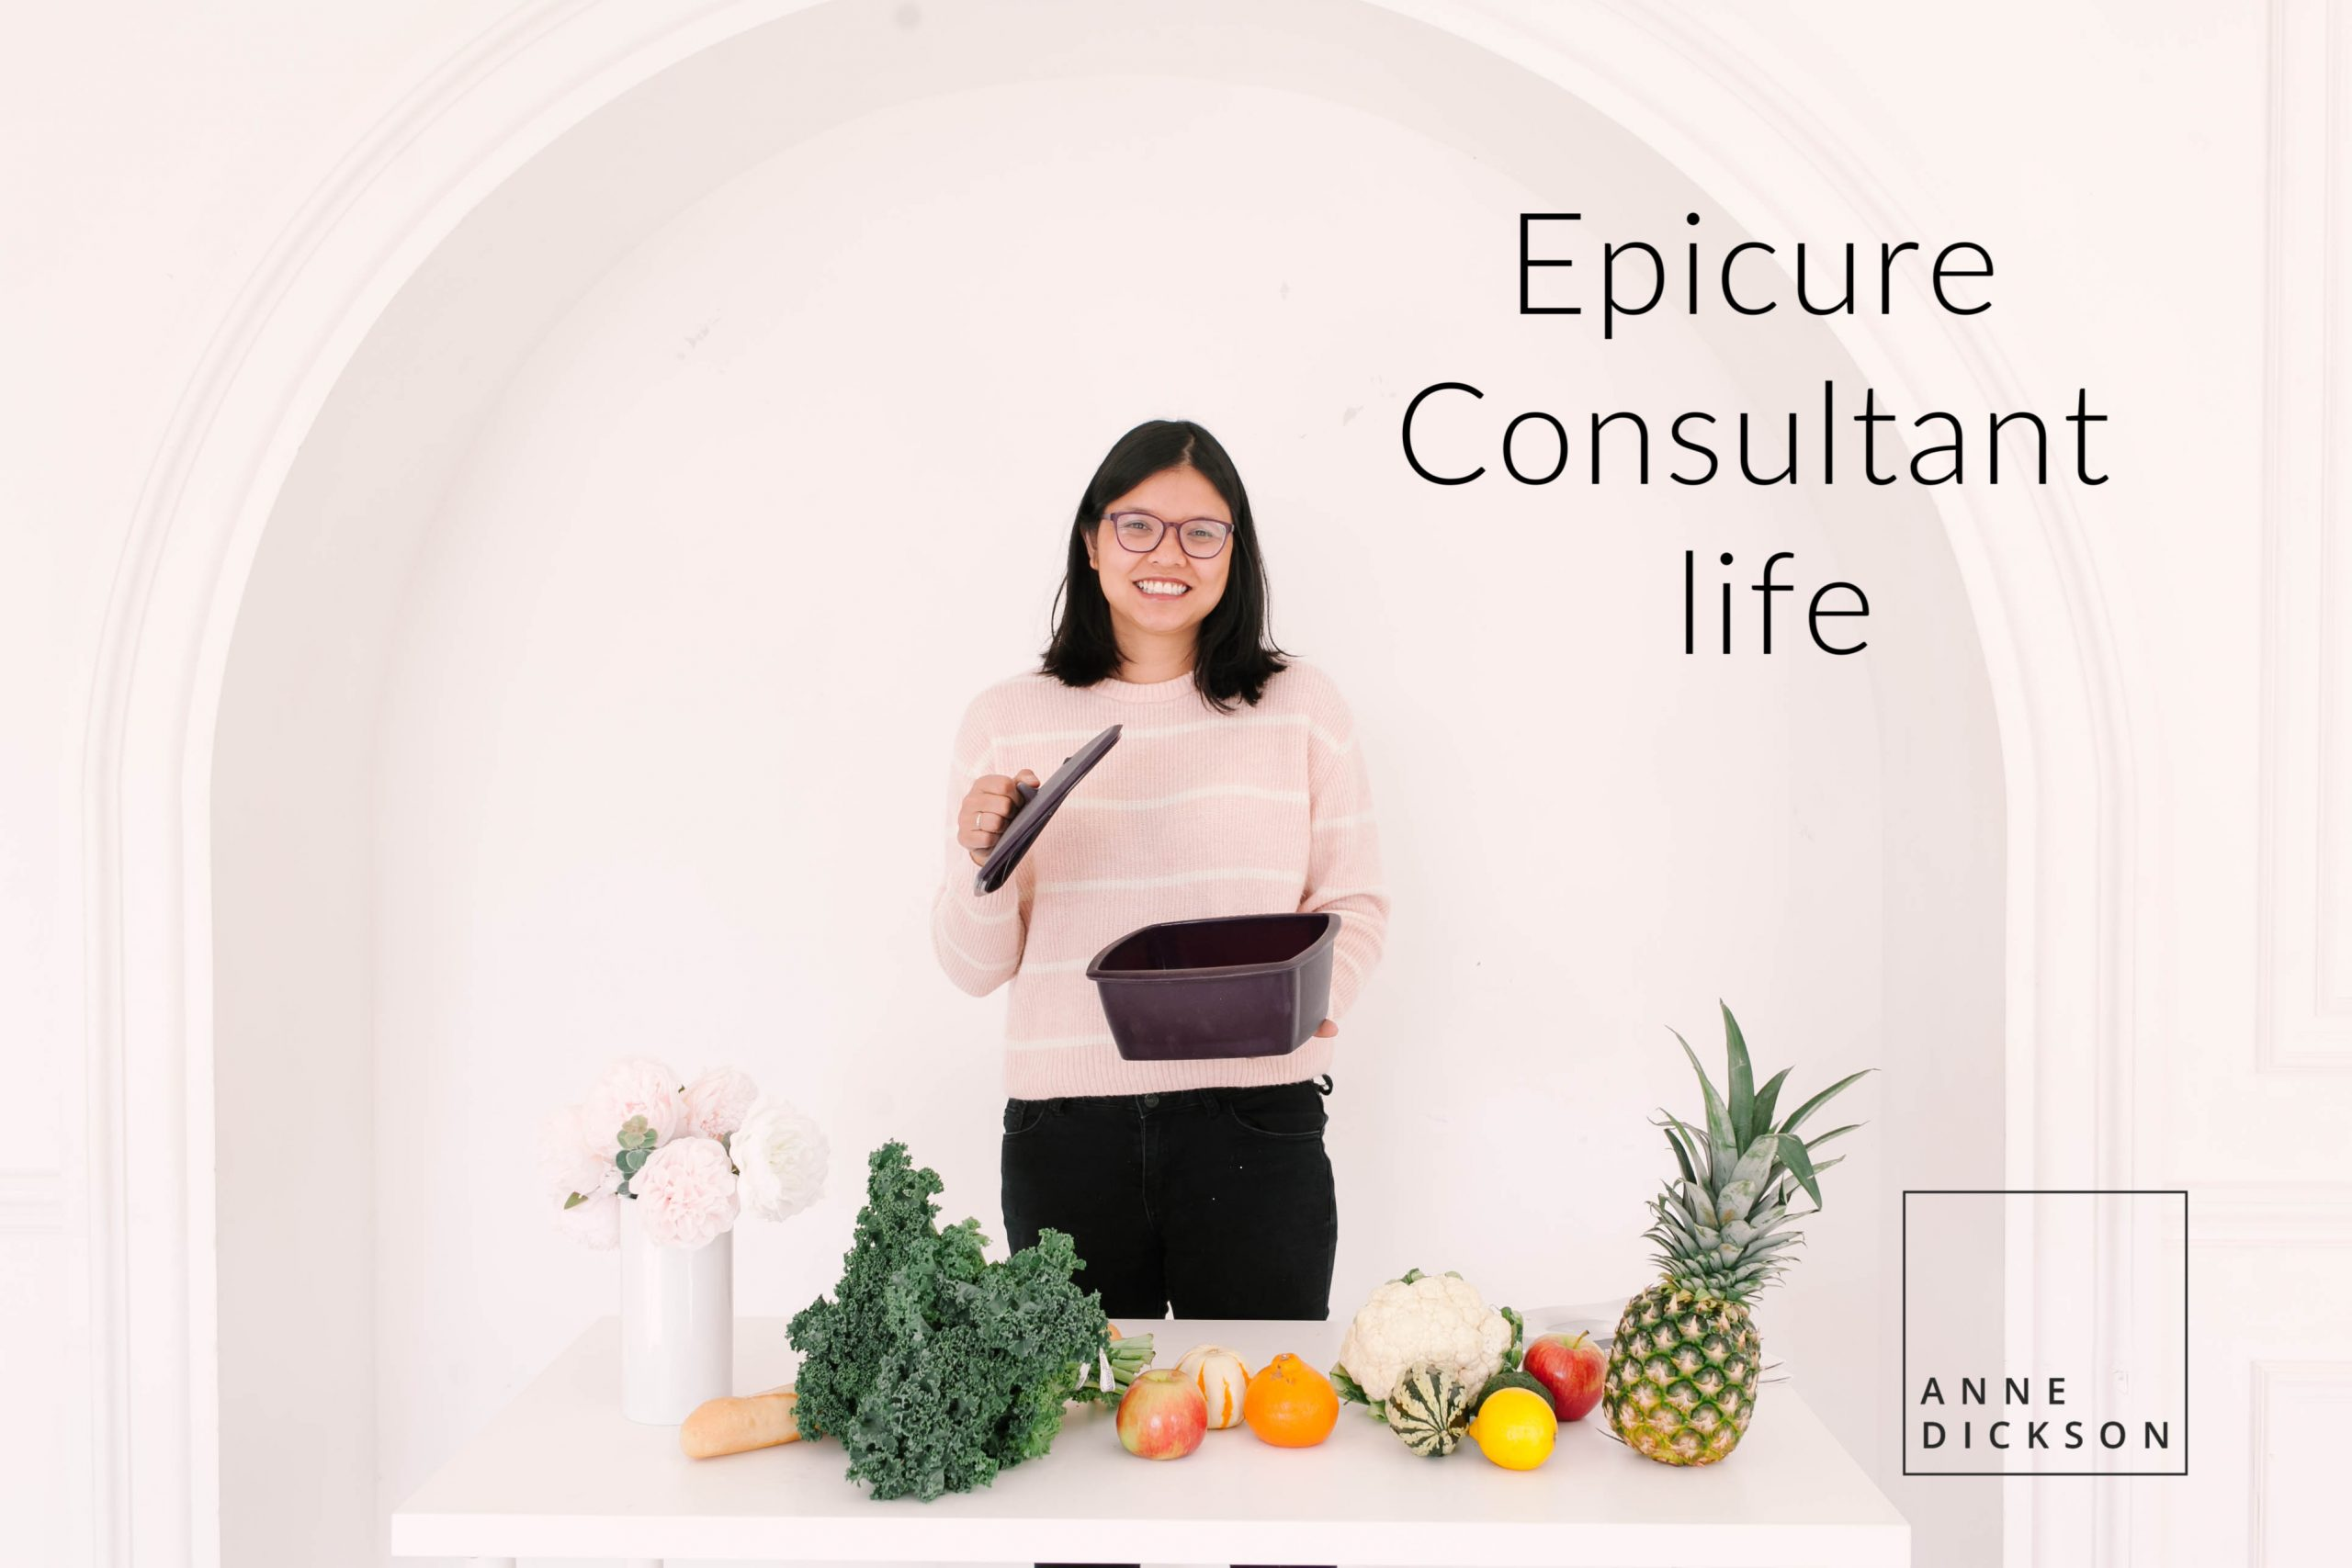 Being an Epicure Consultant in the time of Coronavirus